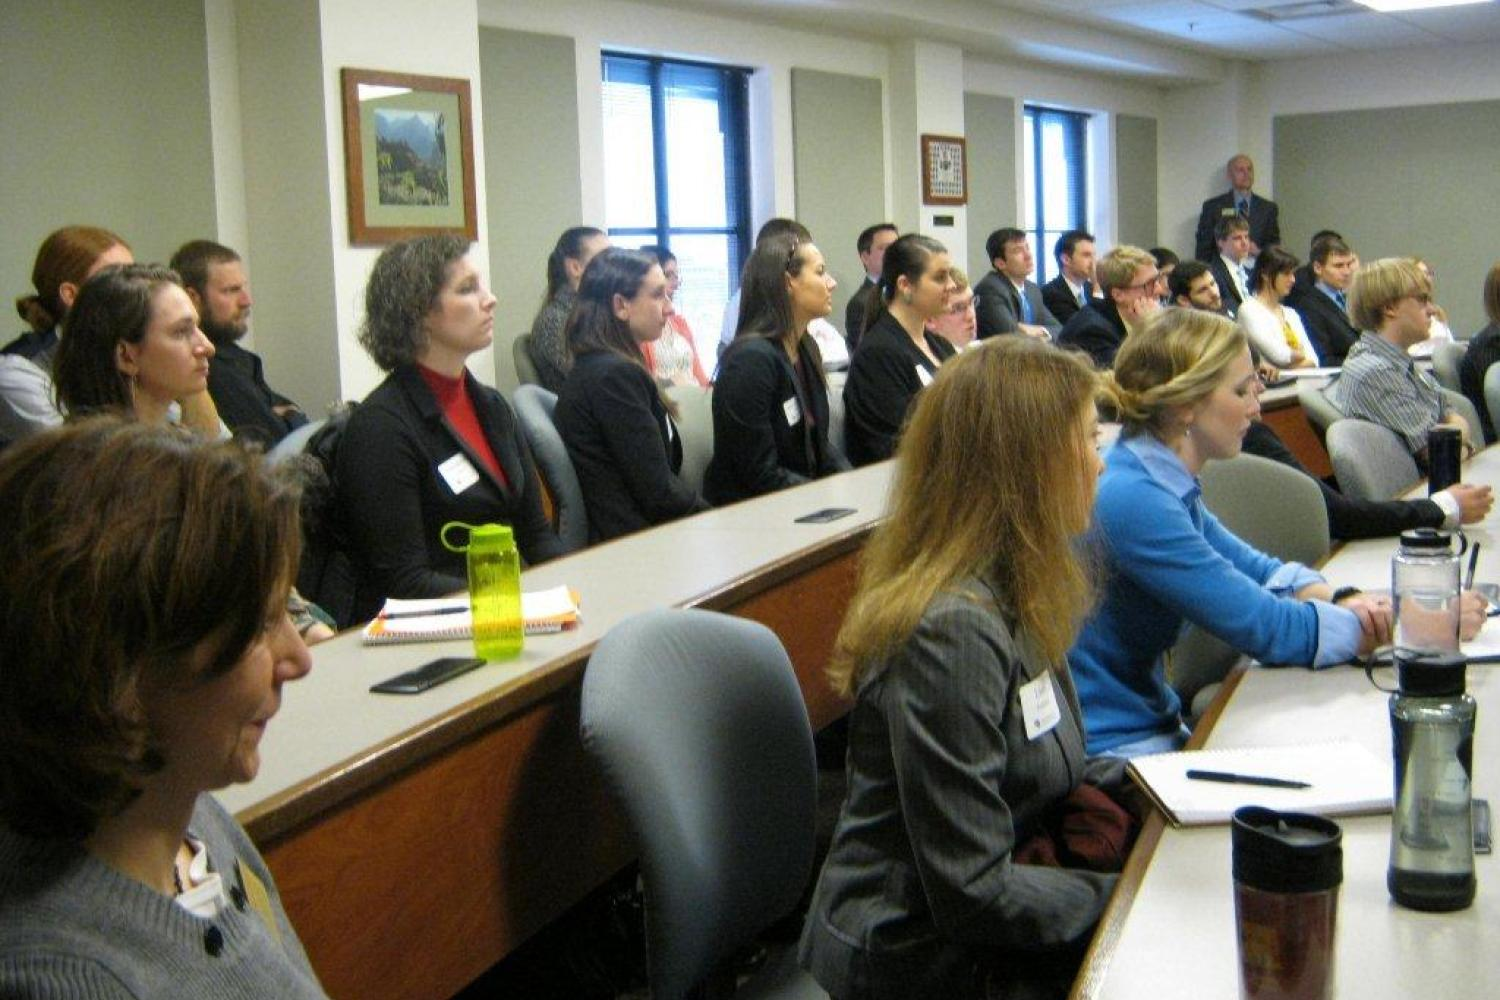 First-year students enjoyed the opportunity to hear about the job hunting experiences of members of the 2L class.